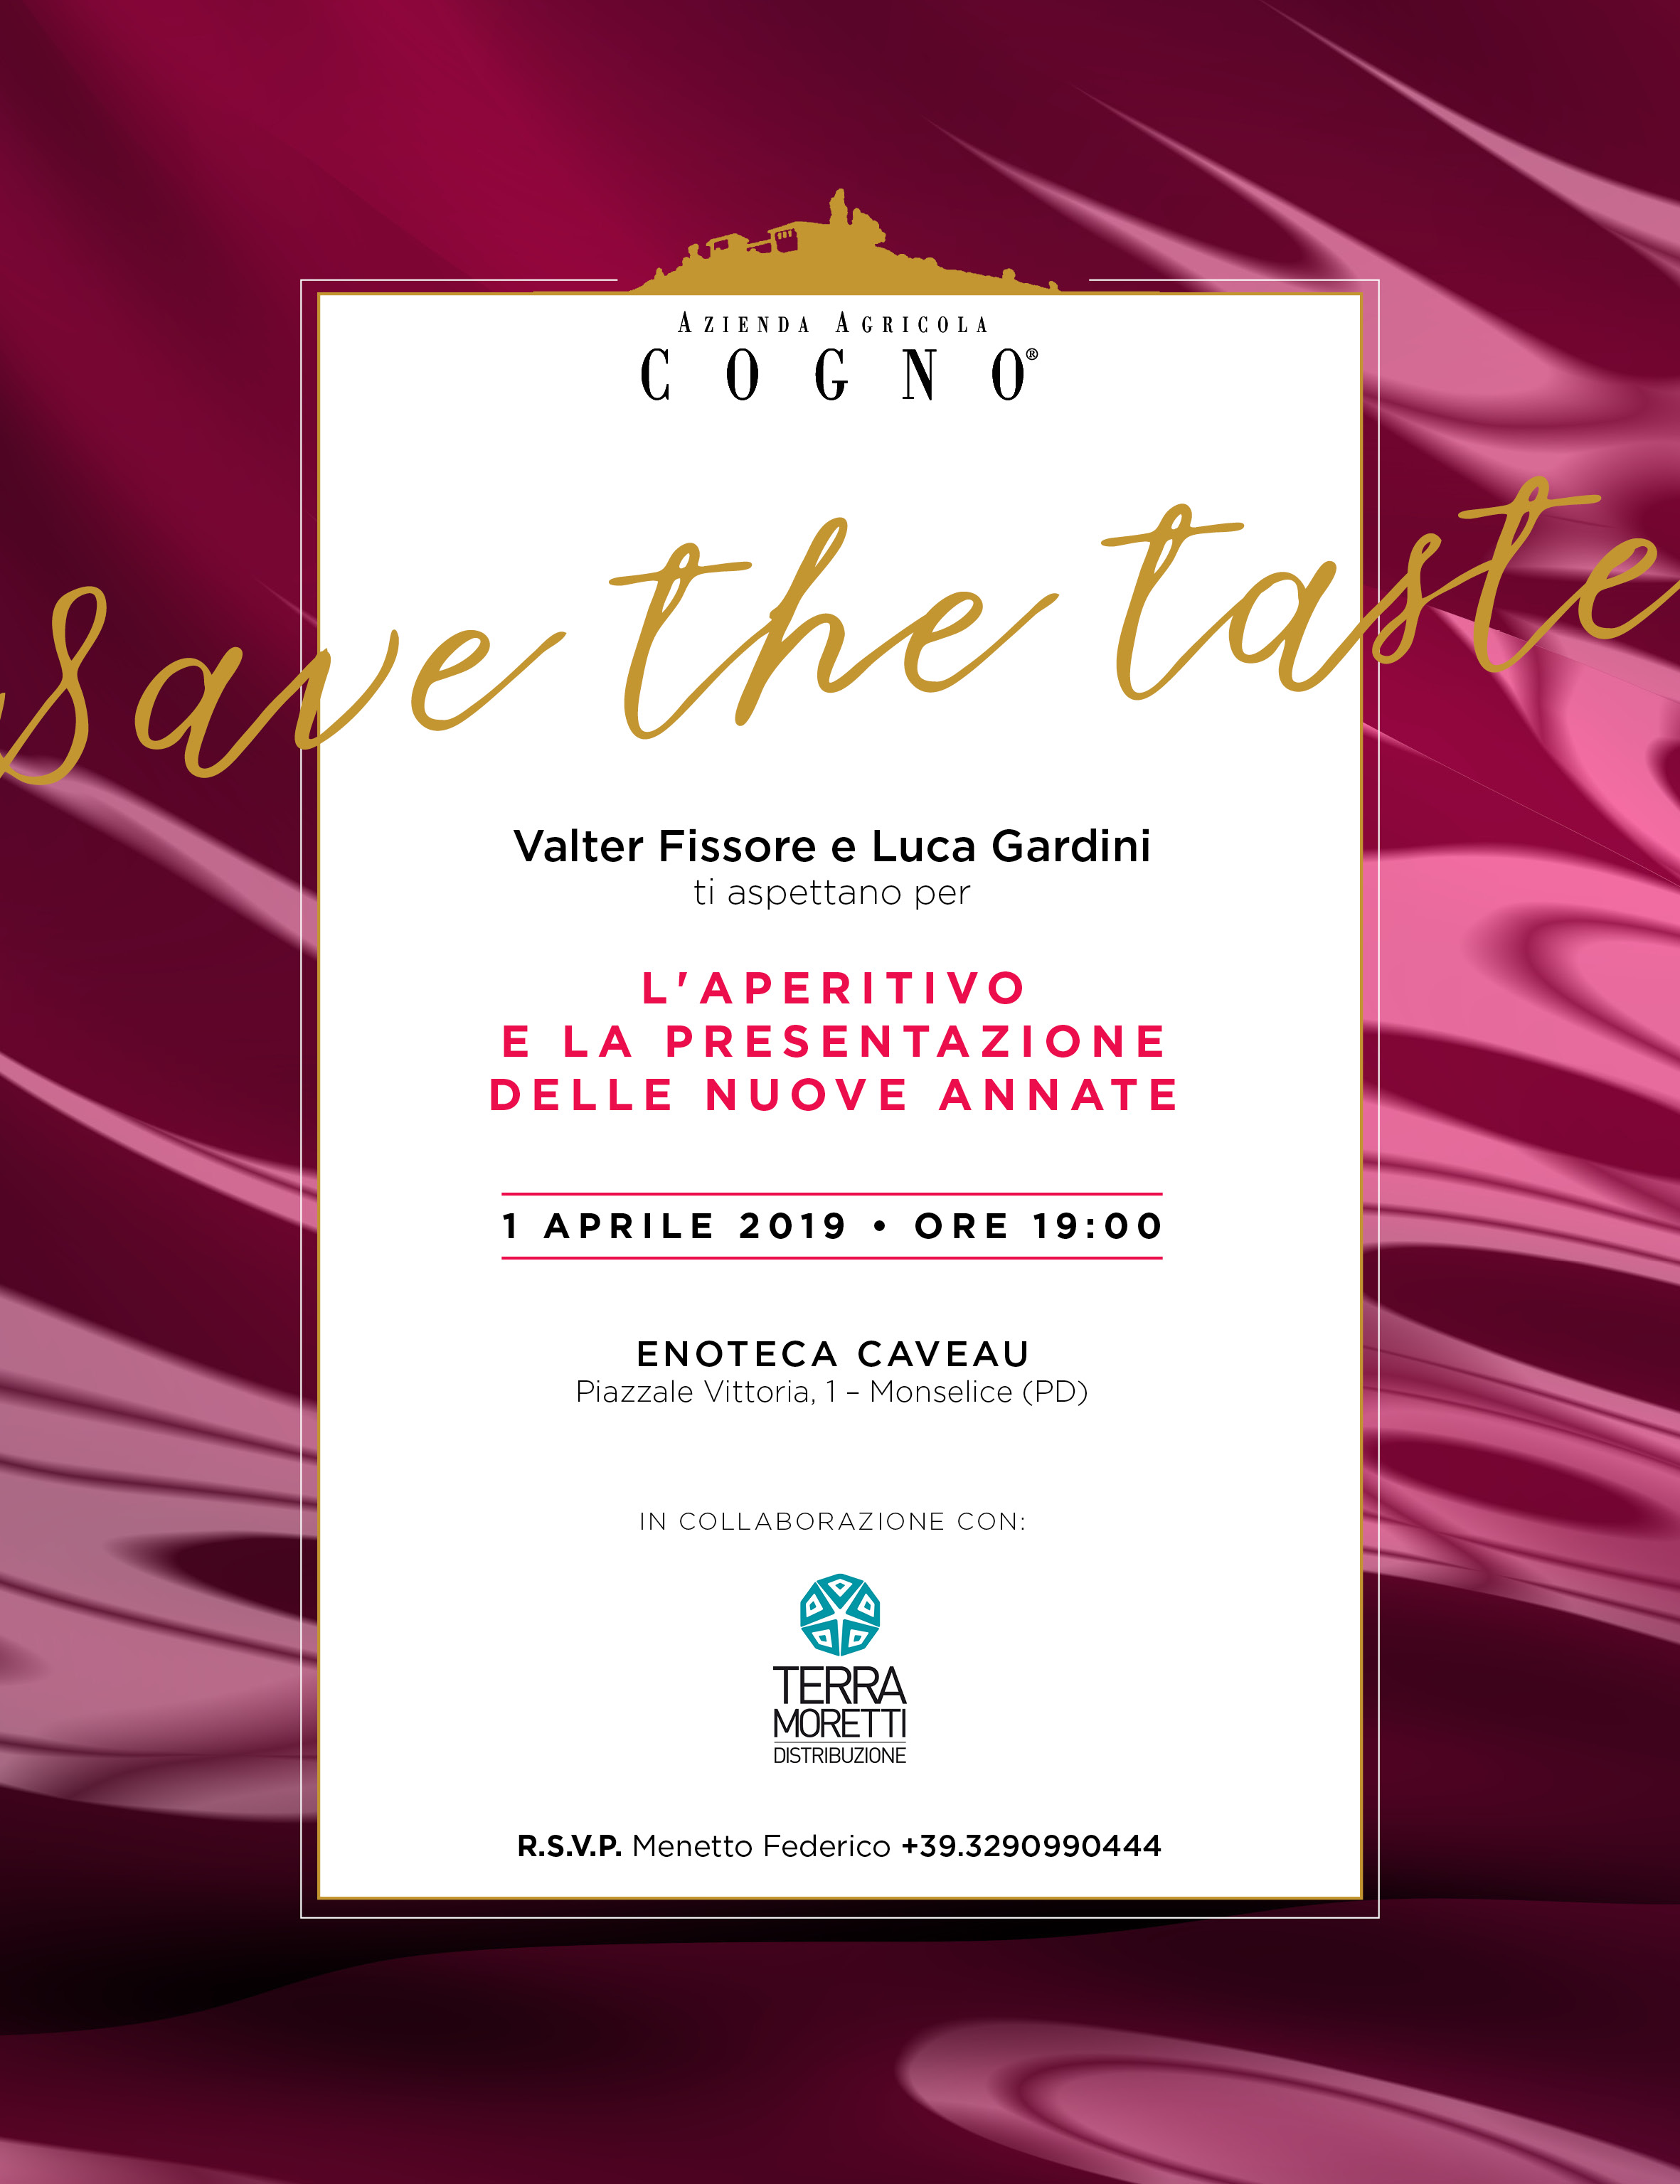 Save the taste! An aperitivo with Luca Gardini and Valter Fissore